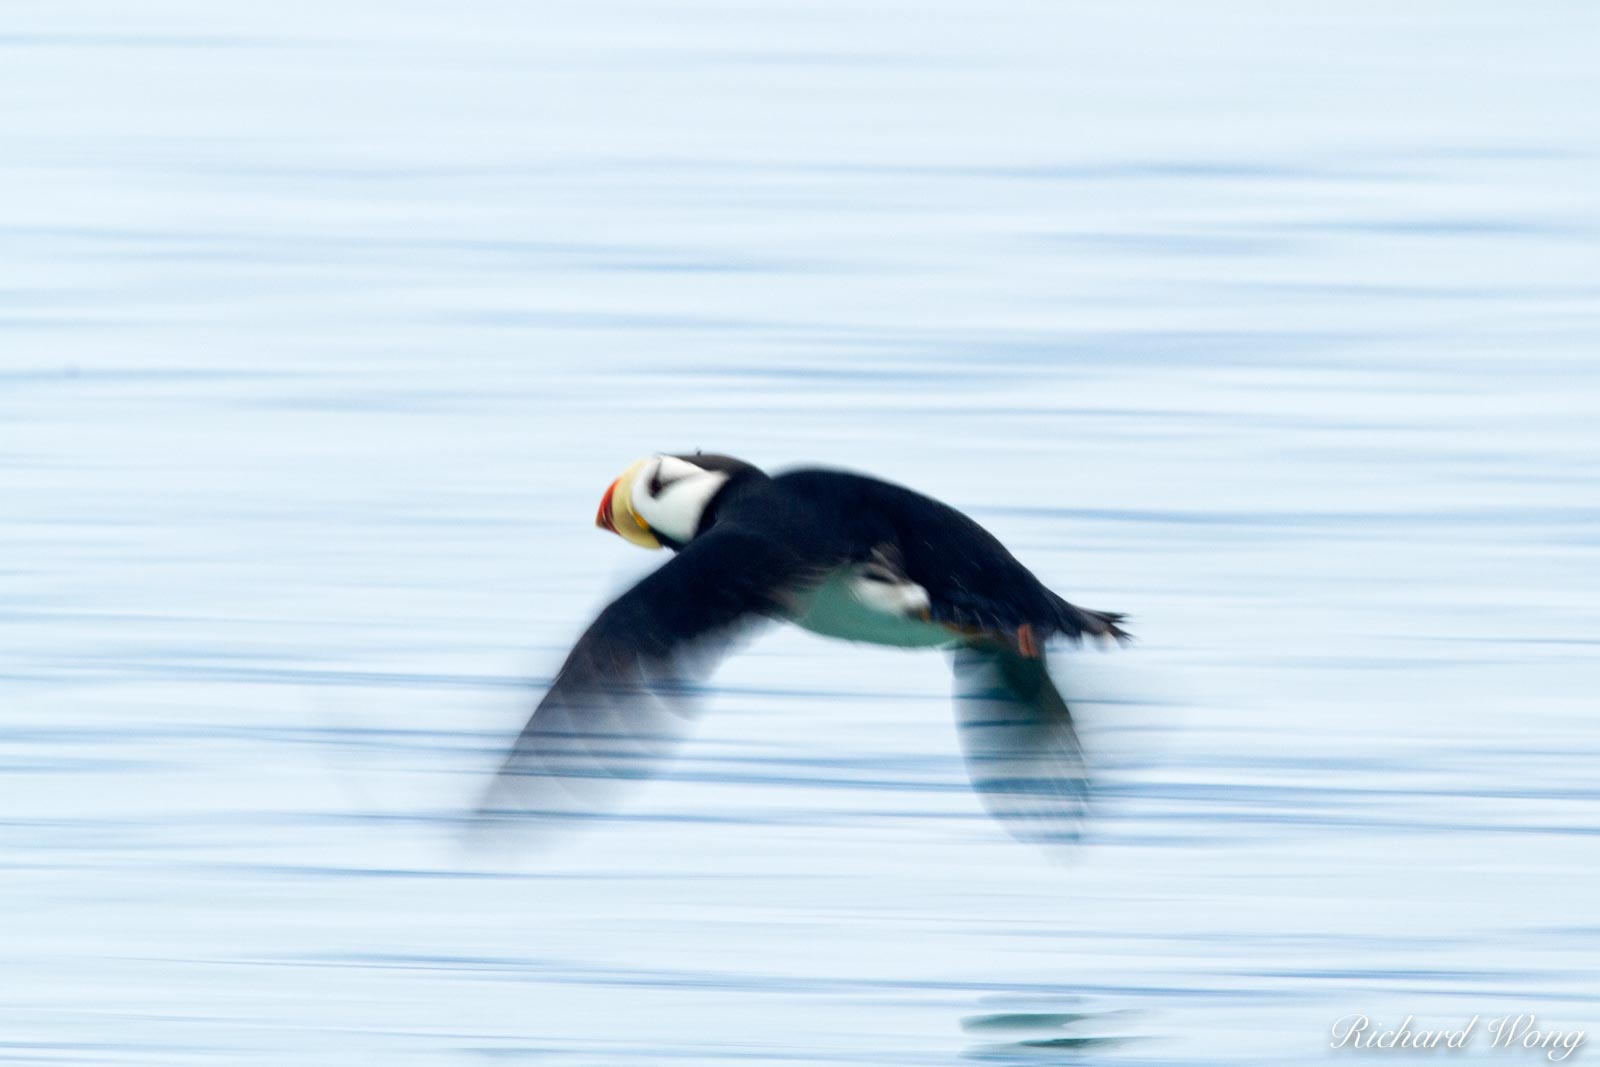 Horned Puffin Skimming Above Water, Alaska Maritime National Wildlife Refuge near Lake Clark National Park, Alaska, photo, photo